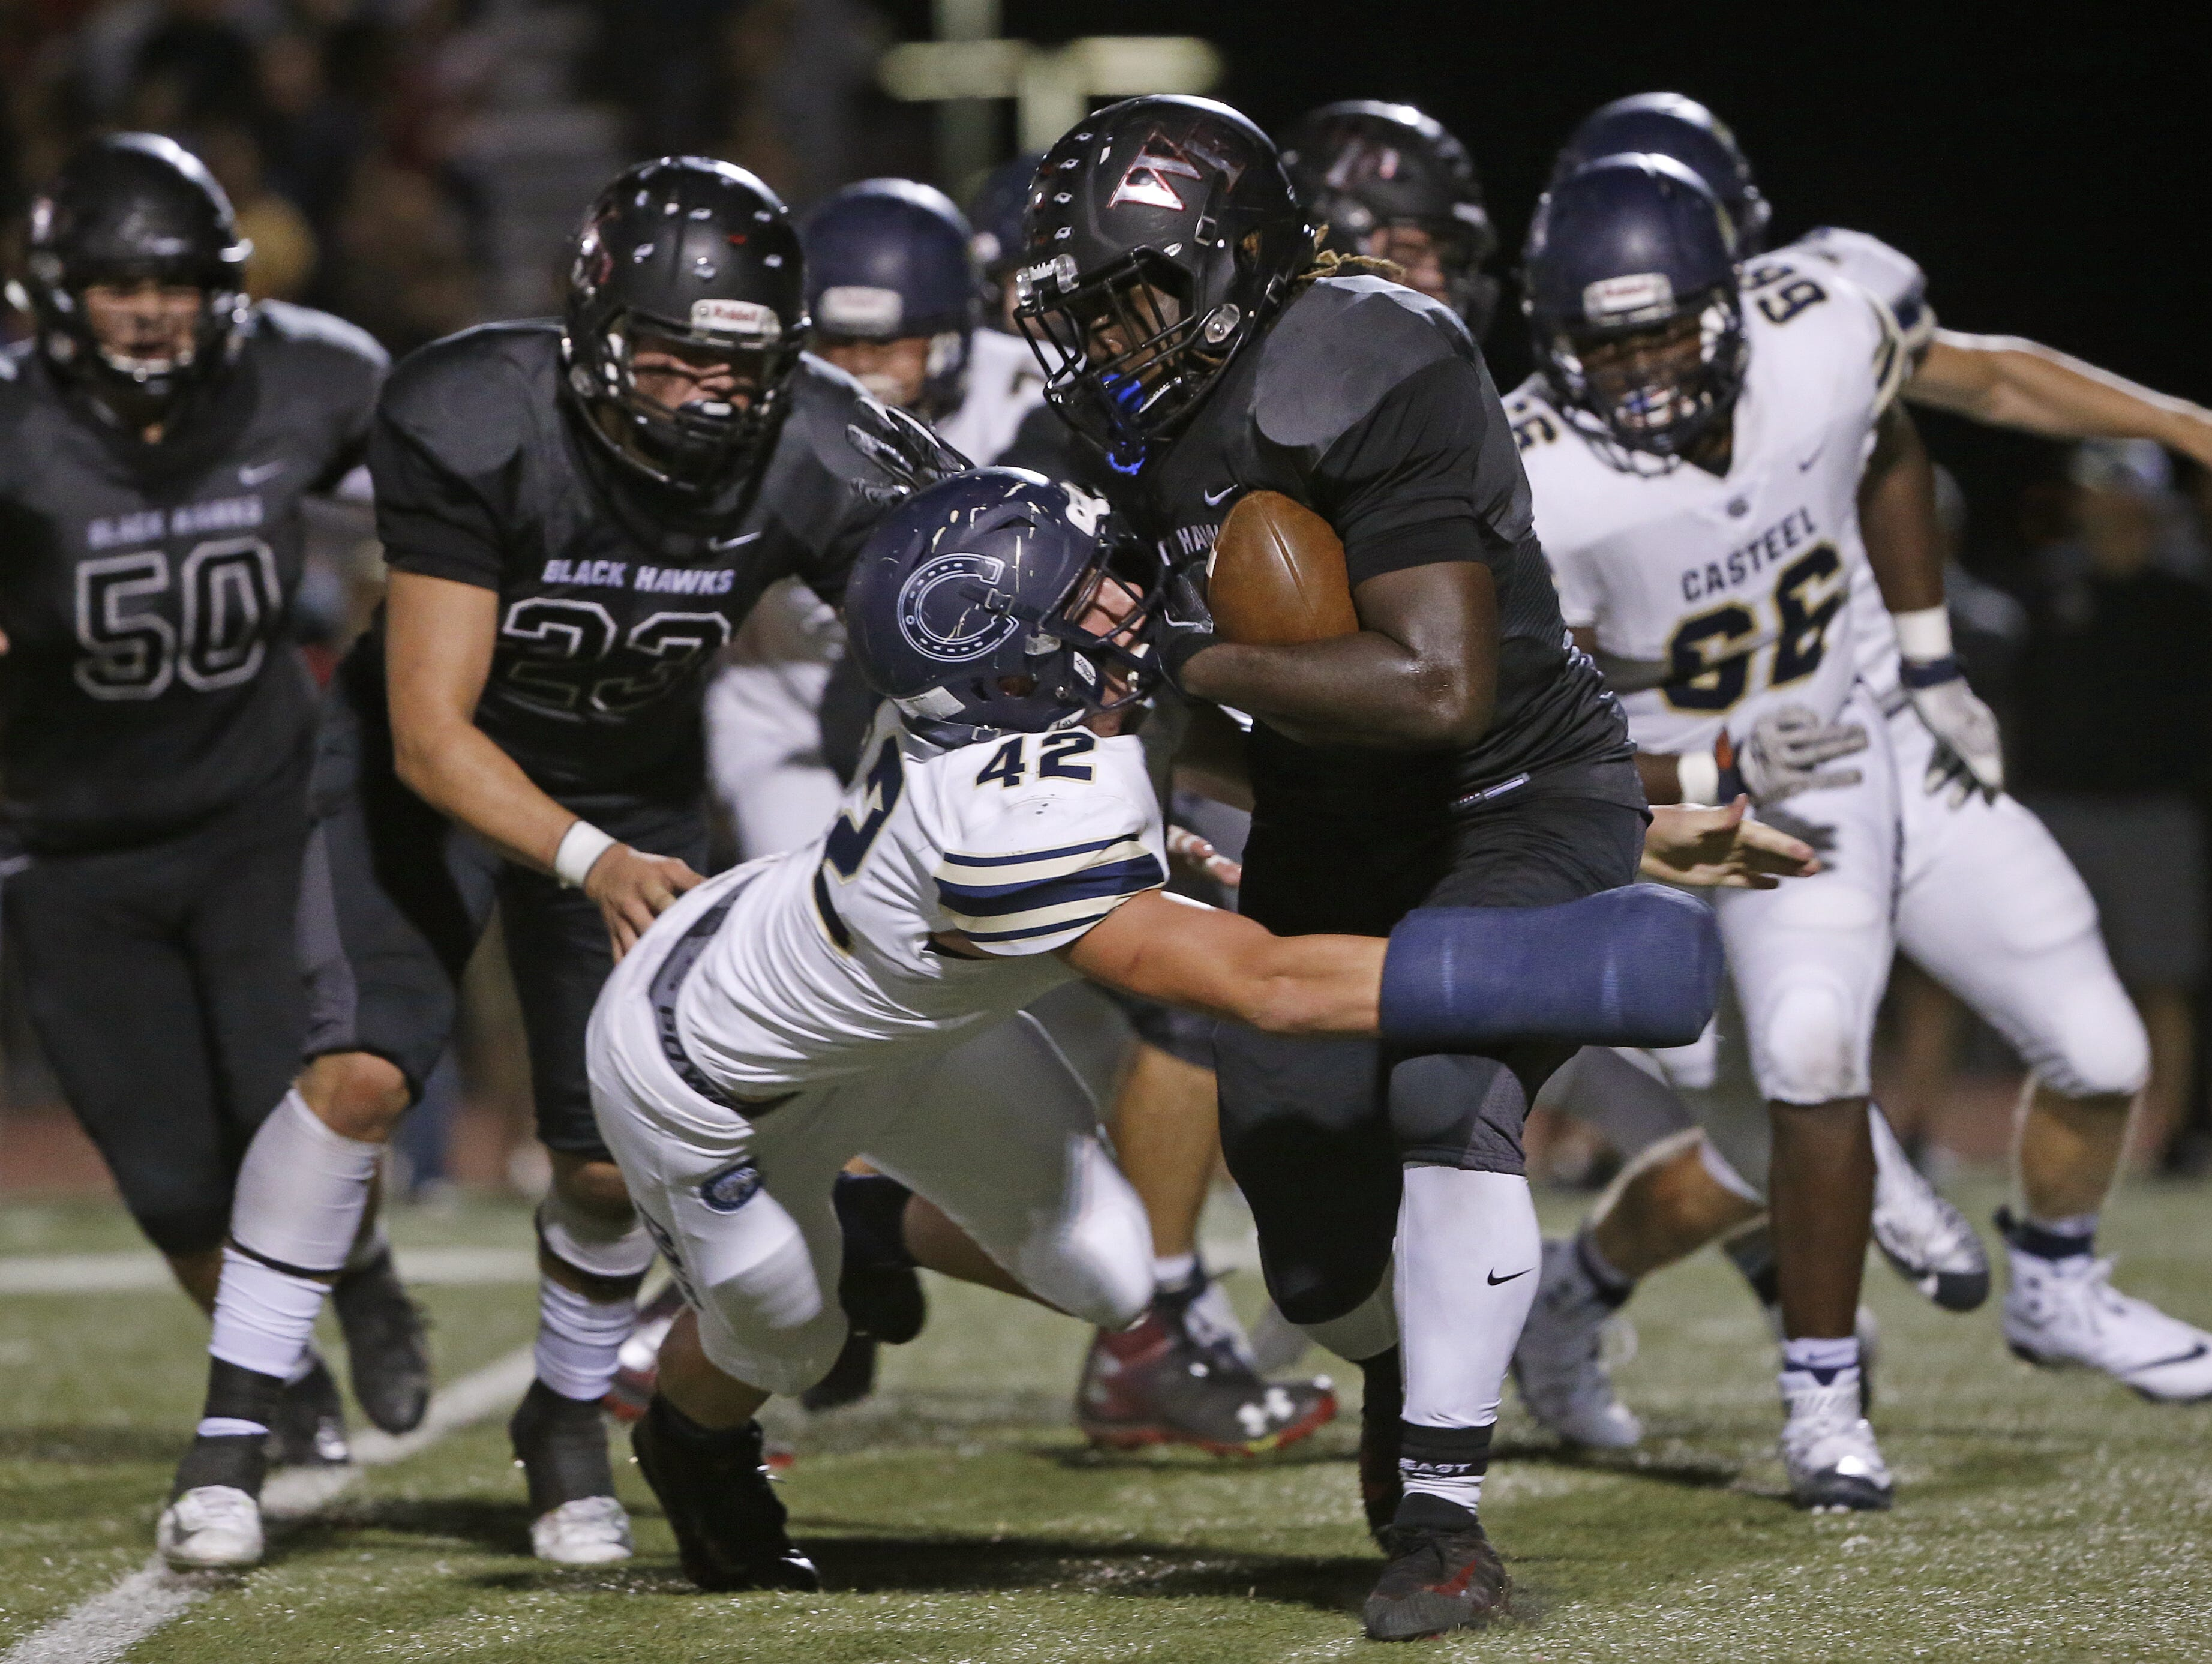 Casteel's Cruz Webster (42) tackles Williams Field's Jaden Thompson (25) at Williams Field High School in Gilbert, Ariz. on Sept. 21, 2018.  #azhsfb